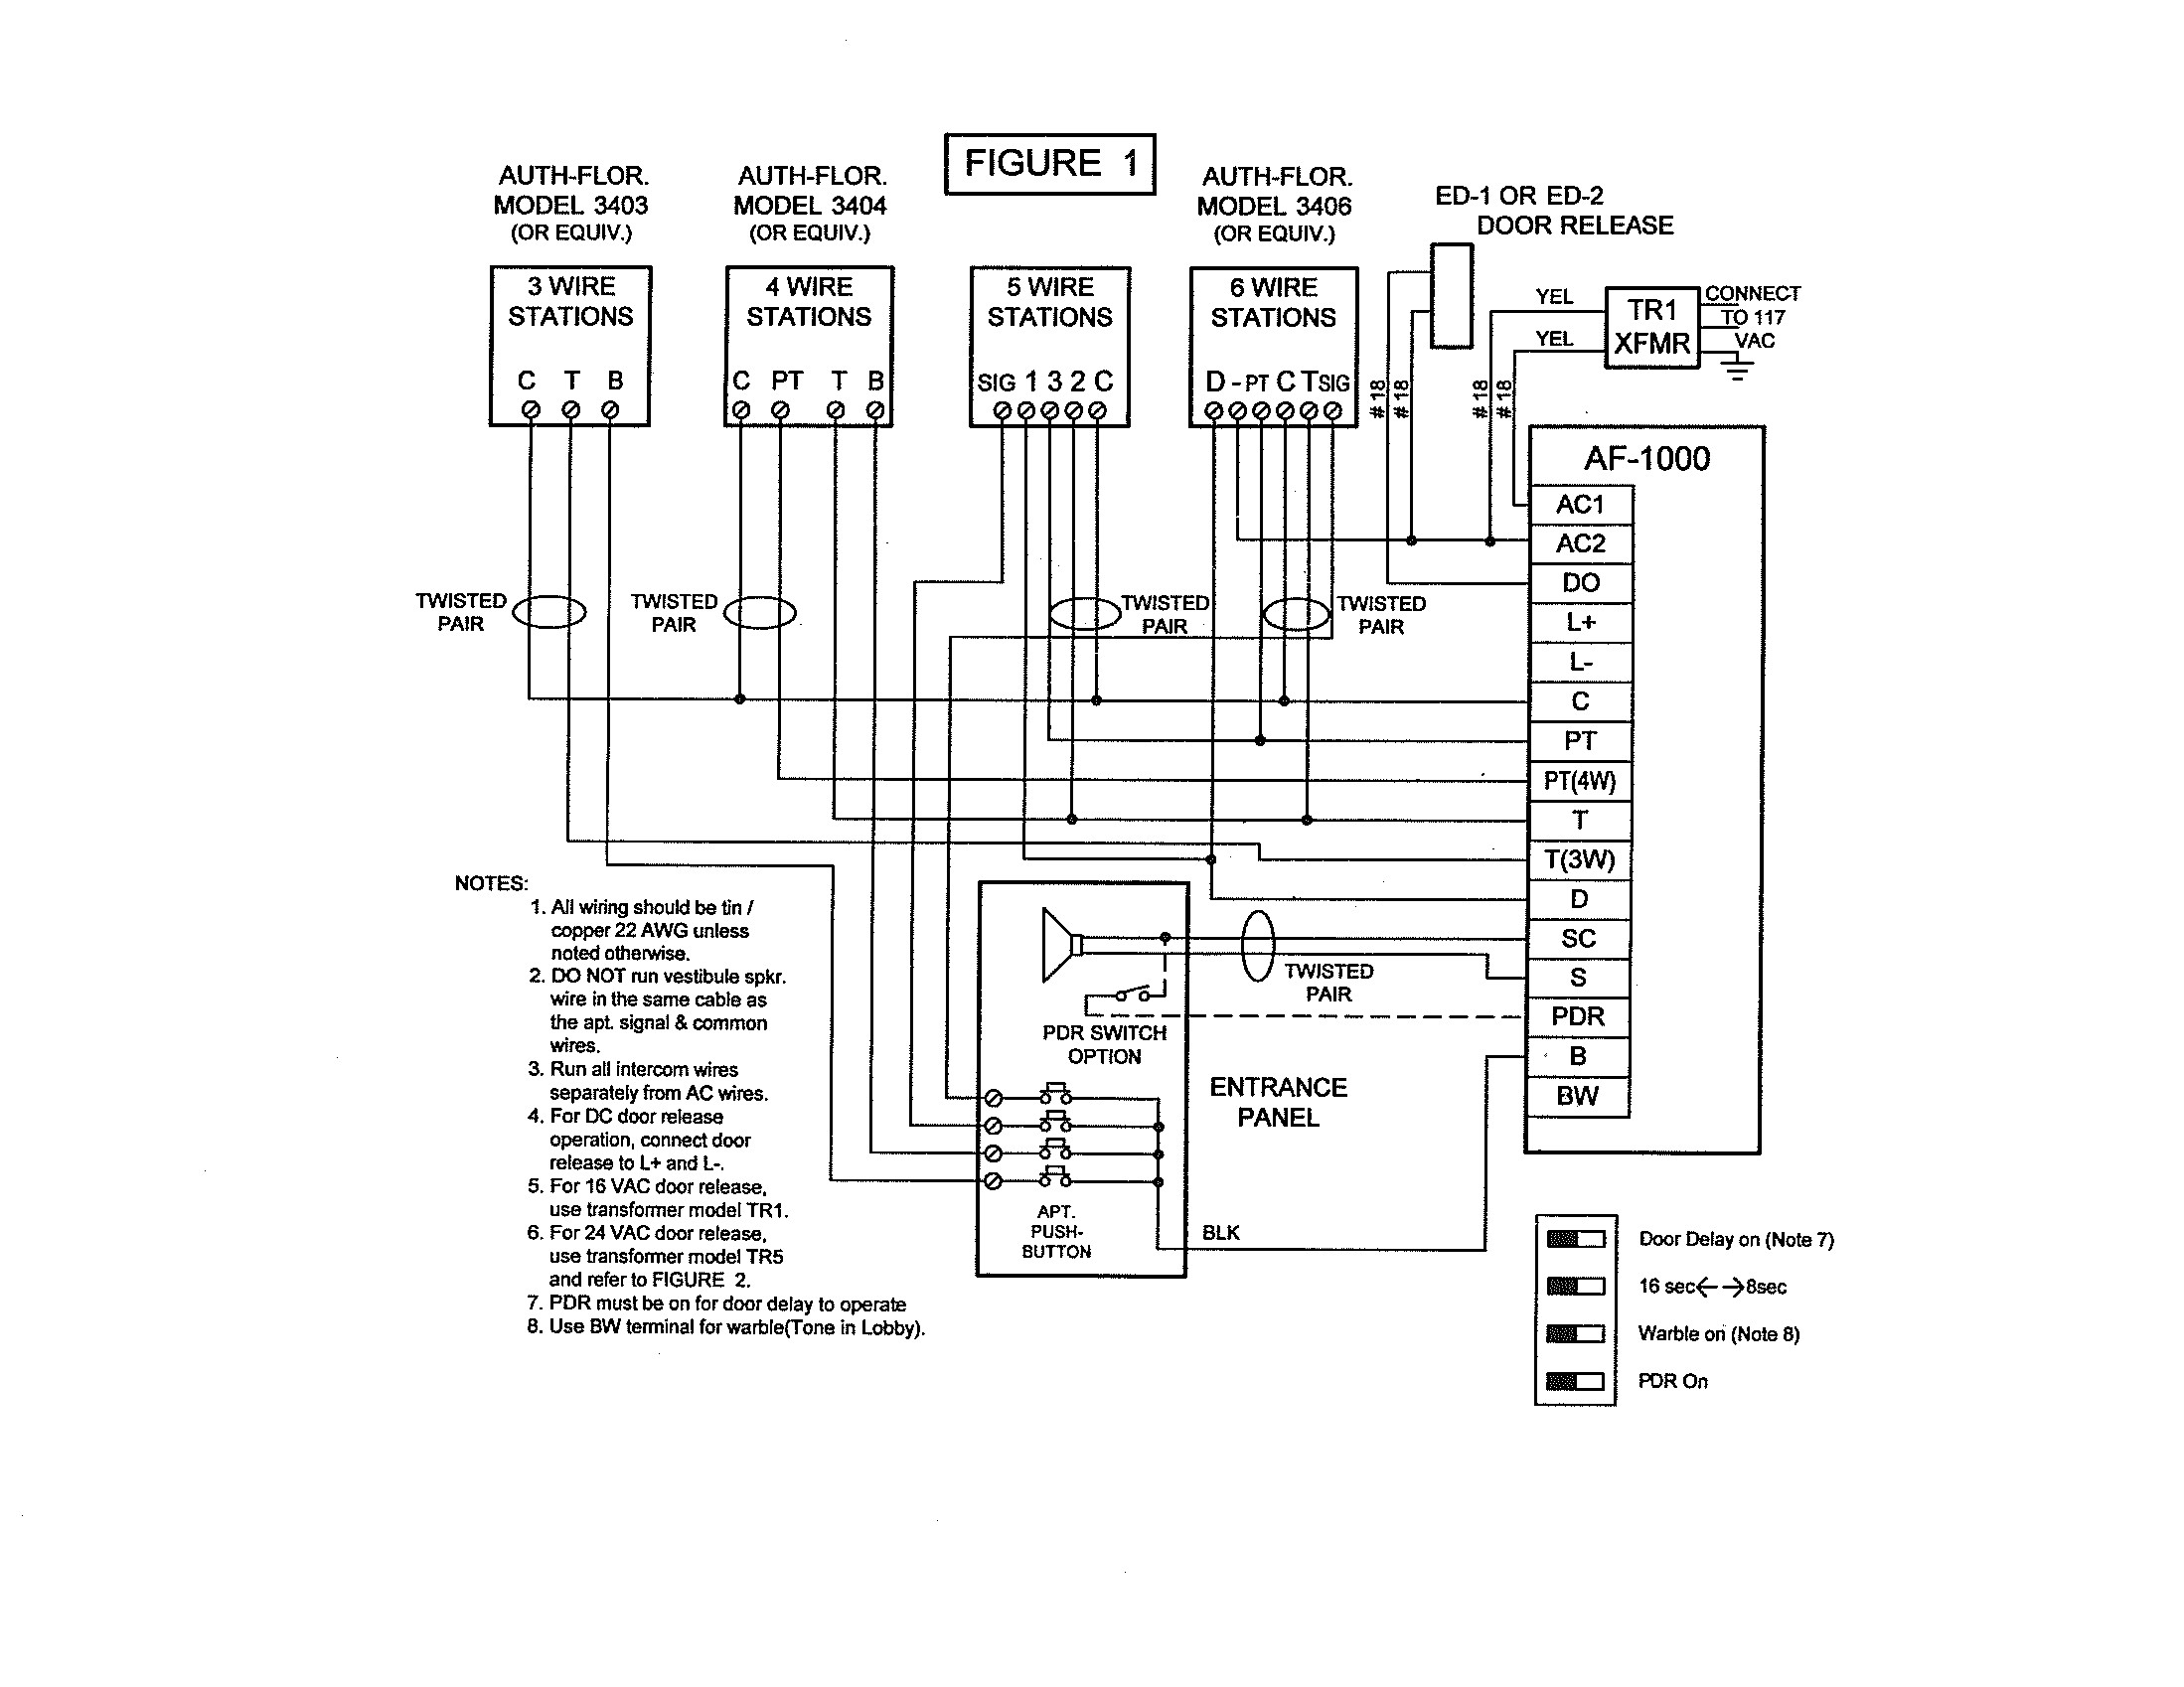 nutone inter systems wiring diagram free picture wiring diagram